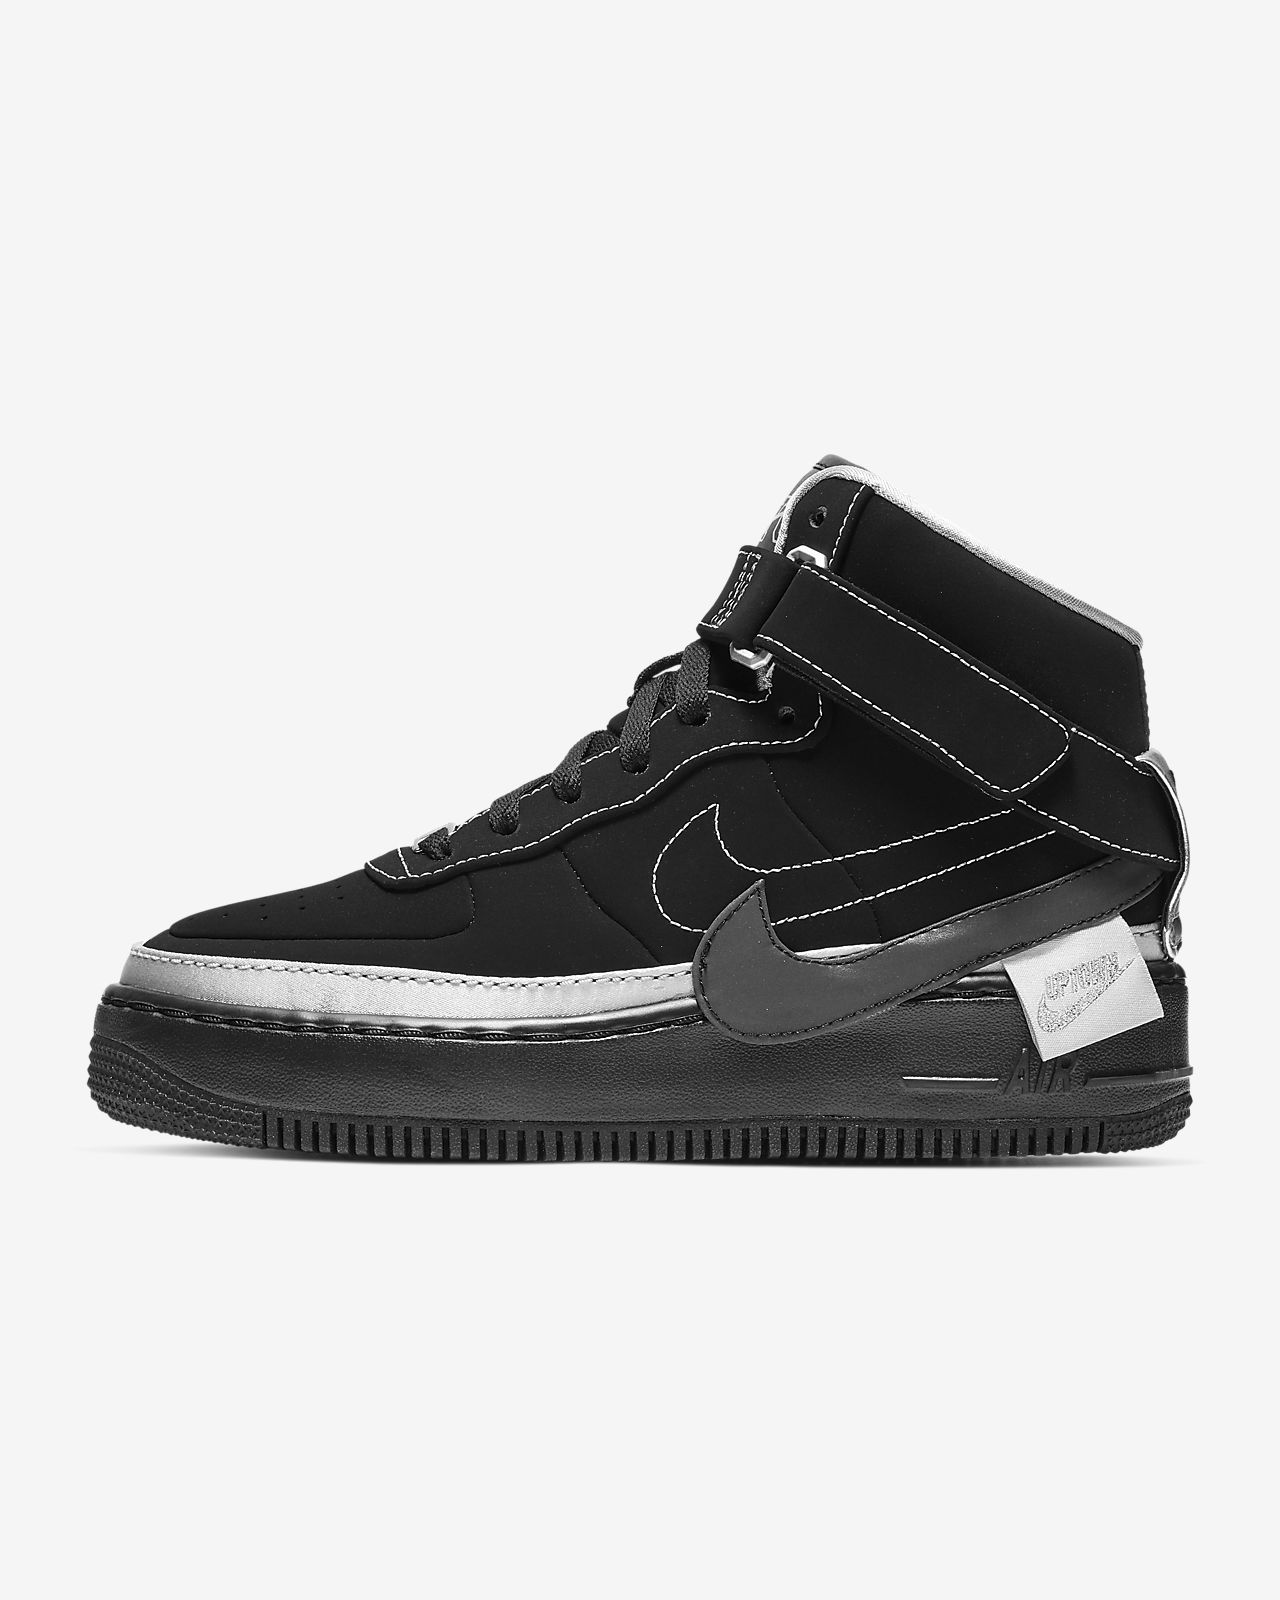 630a7ba6b77e Nike Air Force 1 Jester High XX Women s Shoe. Nike.com